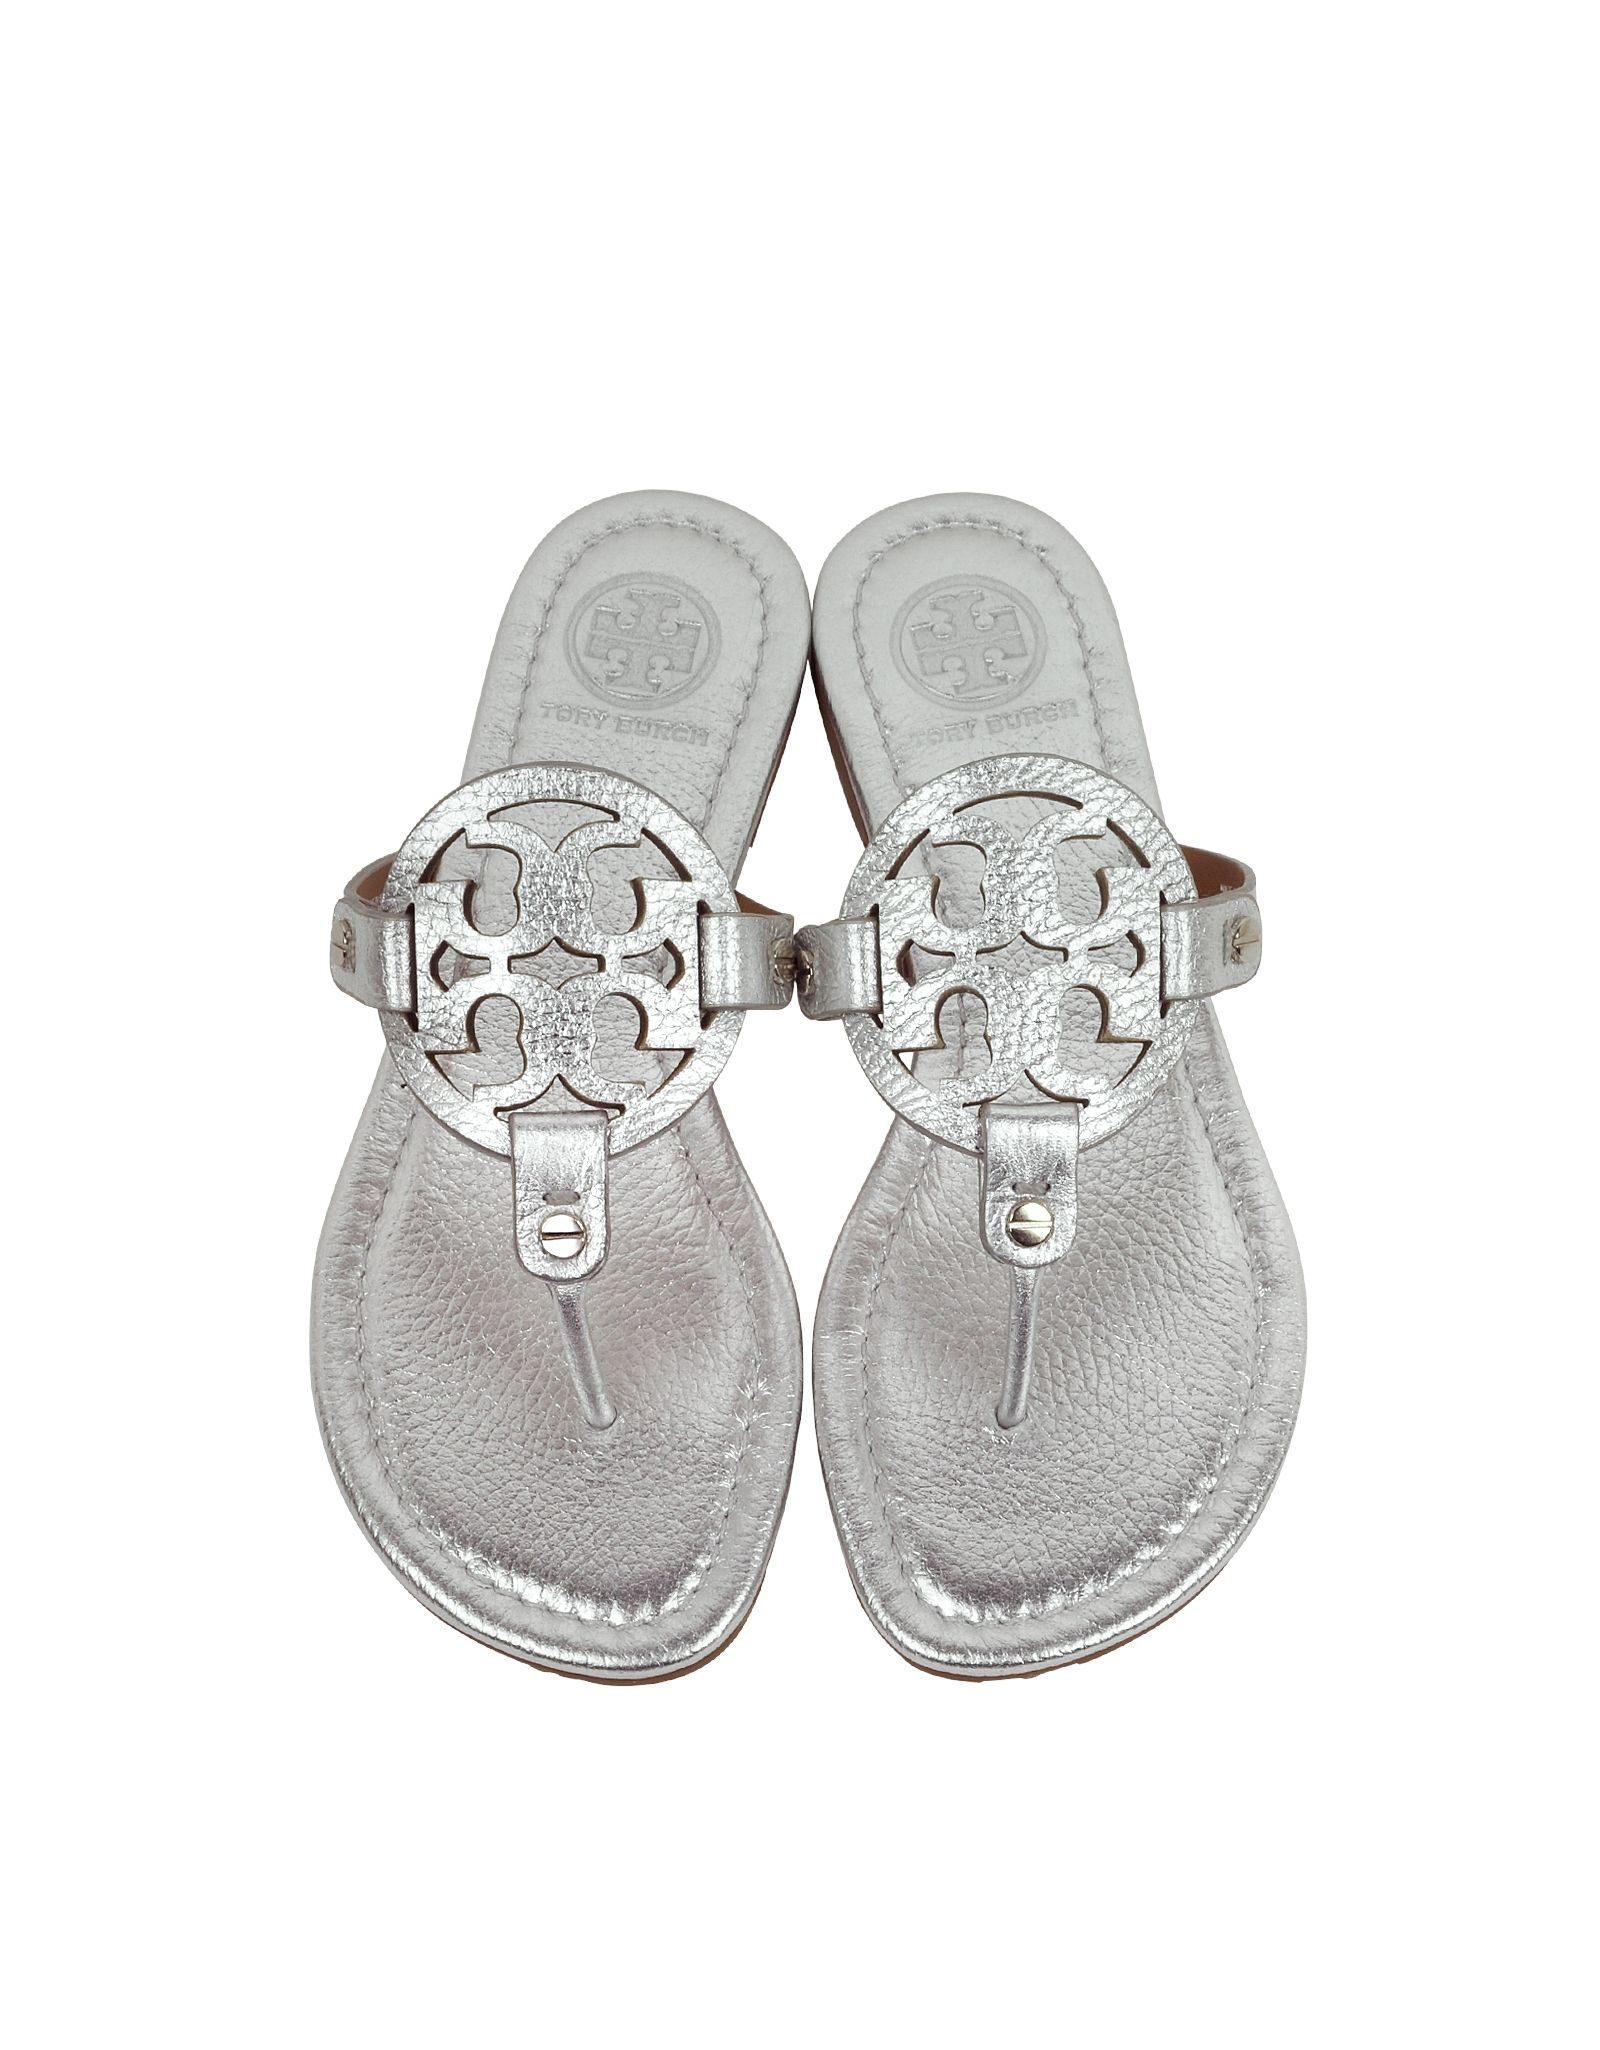 837b5b118 Tory Burch Miller Metallic Silver Leather Sandal